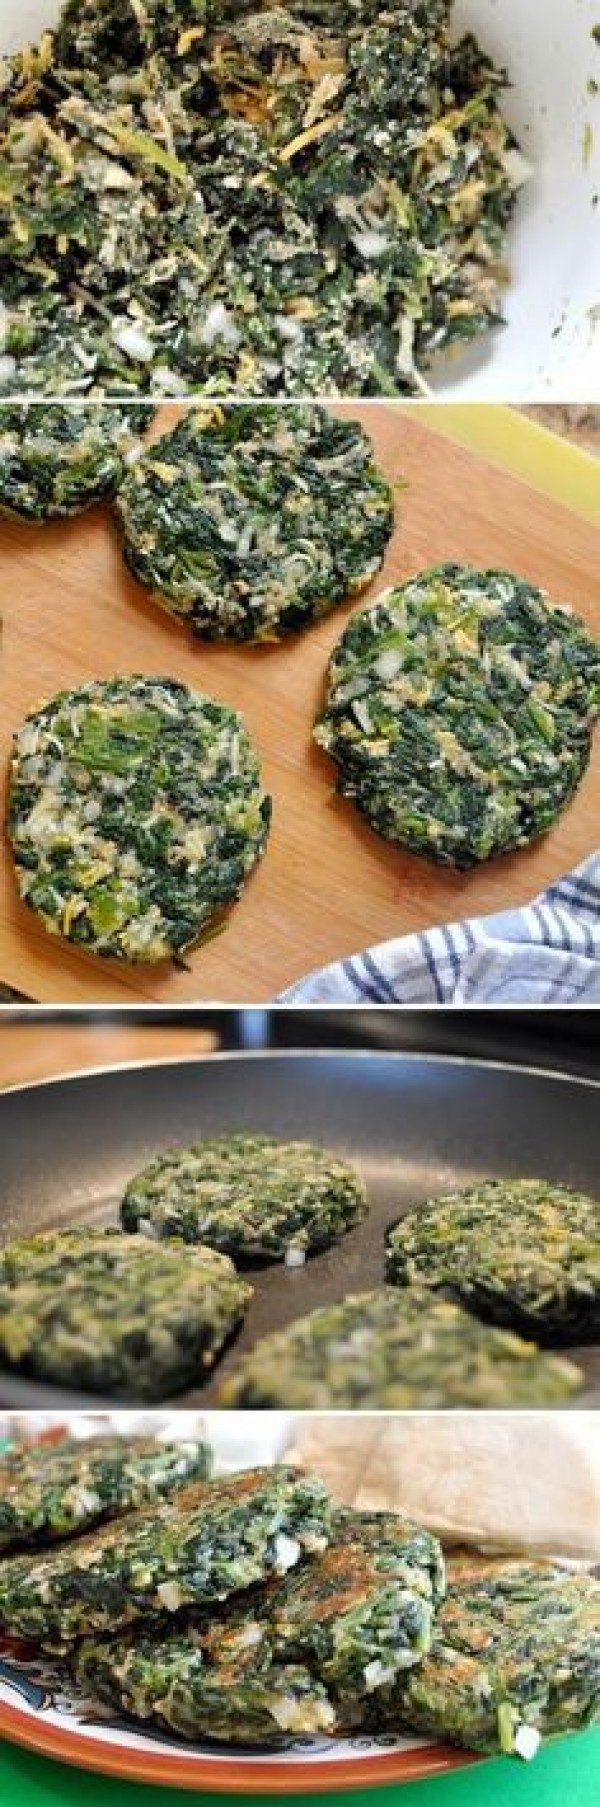 50 Most Delicious and Healthy Vegetarian Recipes - Check out this recipe for spinach burgers. Yummy! #RecipeIdeas @recipes_to_go